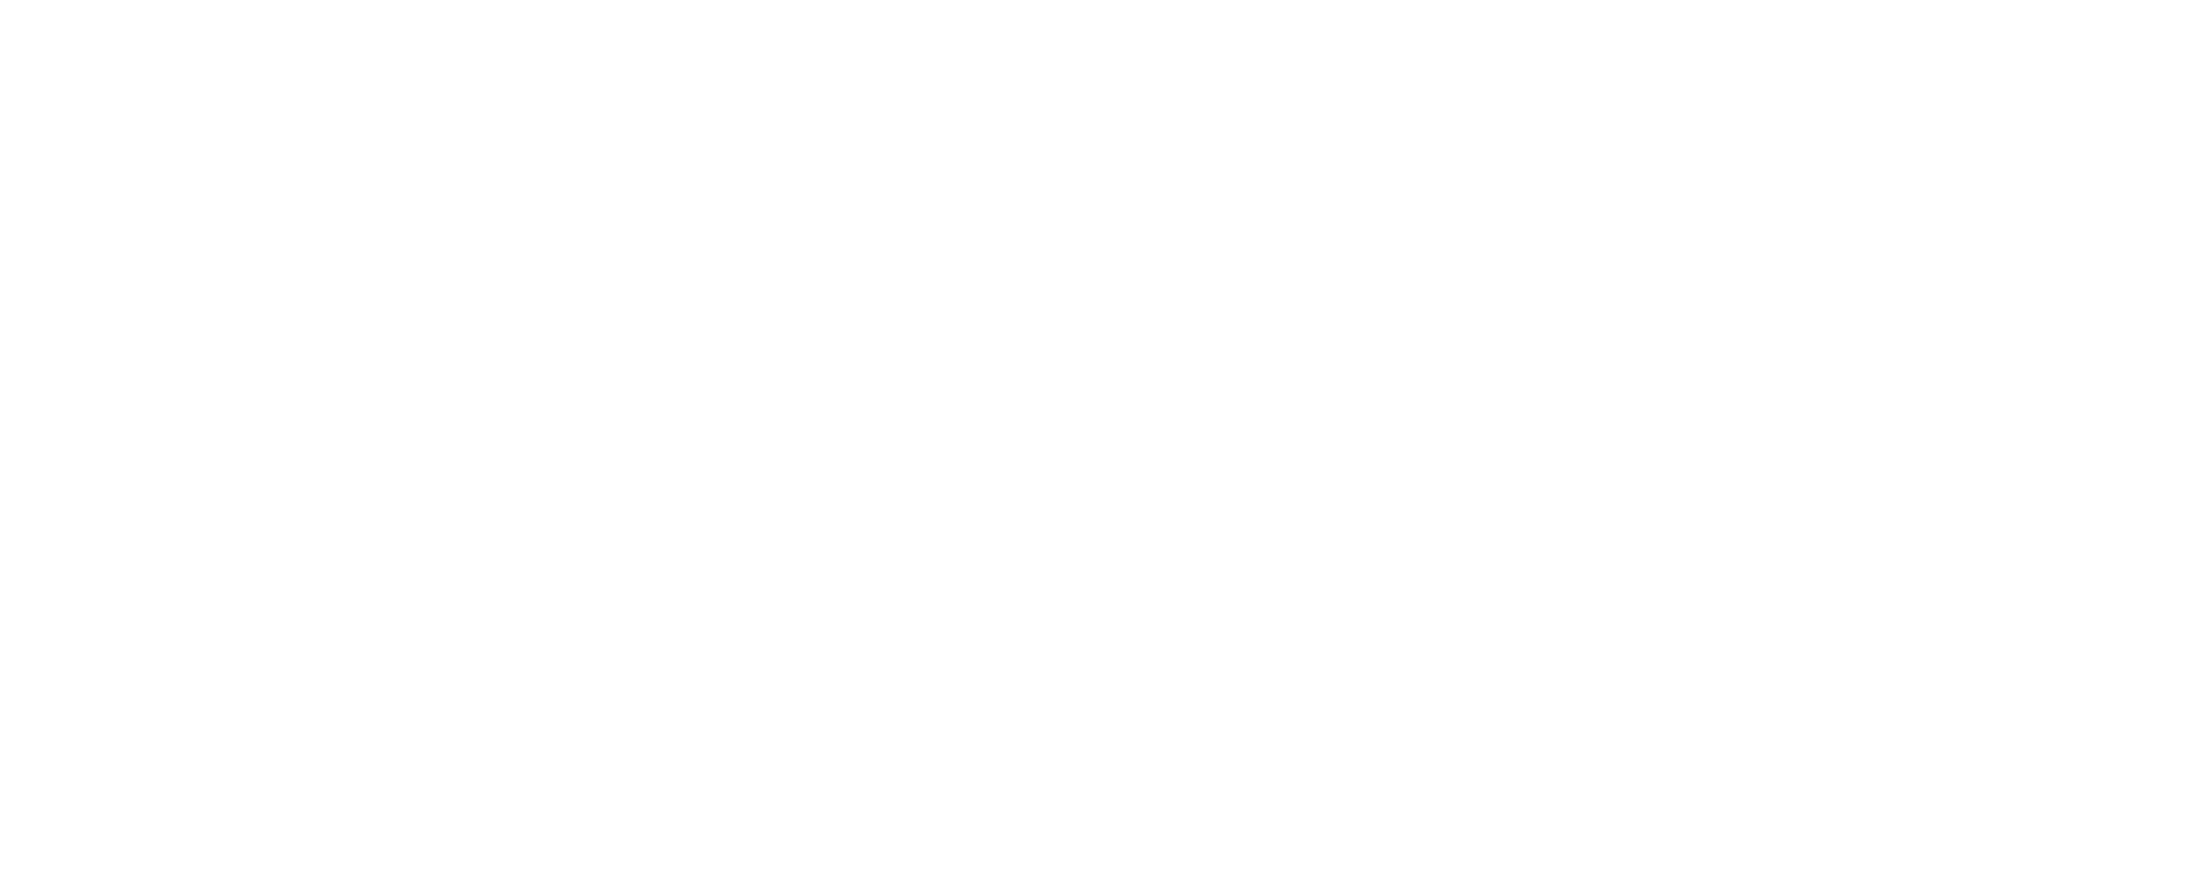 Smf personal training. Dumbbells clipart exercise science